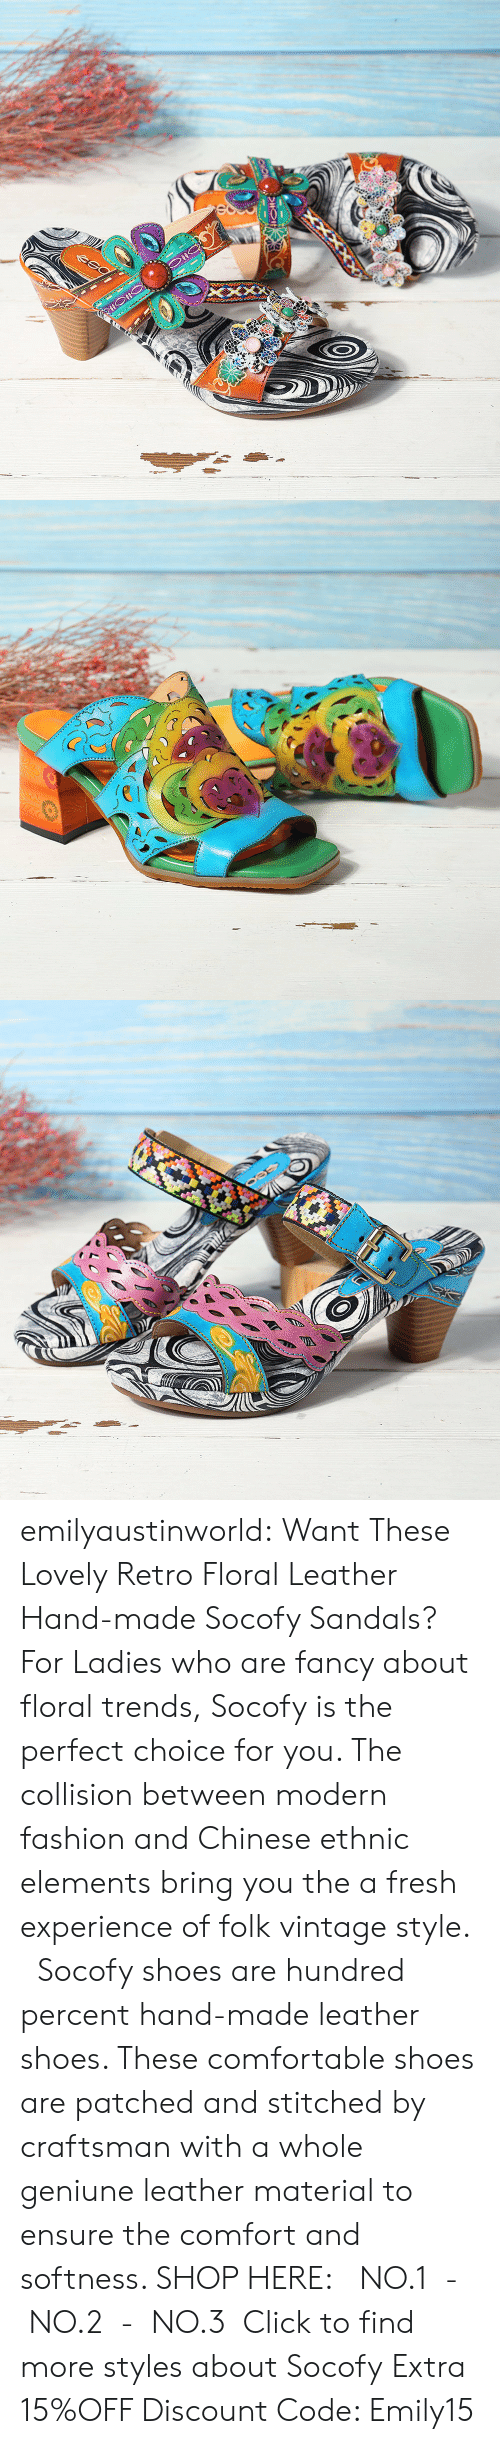 Ensure: emilyaustinworld: Want These Lovely Retro Floral Leather Hand-made Socofy Sandals?  For Ladies who are fancy about floral trends, Socofy is the perfect choice for you. The collision between modern fashion and Chinese ethnic elements bring you the a fresh experience of folk vintage style.   Socofy shoes are hundred percent hand-made leather shoes. These comfortable shoes are patched and stitched by craftsman with a whole geniune leather material to ensure the comfort and softness.  SHOP HERE: NO.1- NO.2- NO.3 Click to find more styles about Socofy Extra 15%OFF Discount Code: Emily15